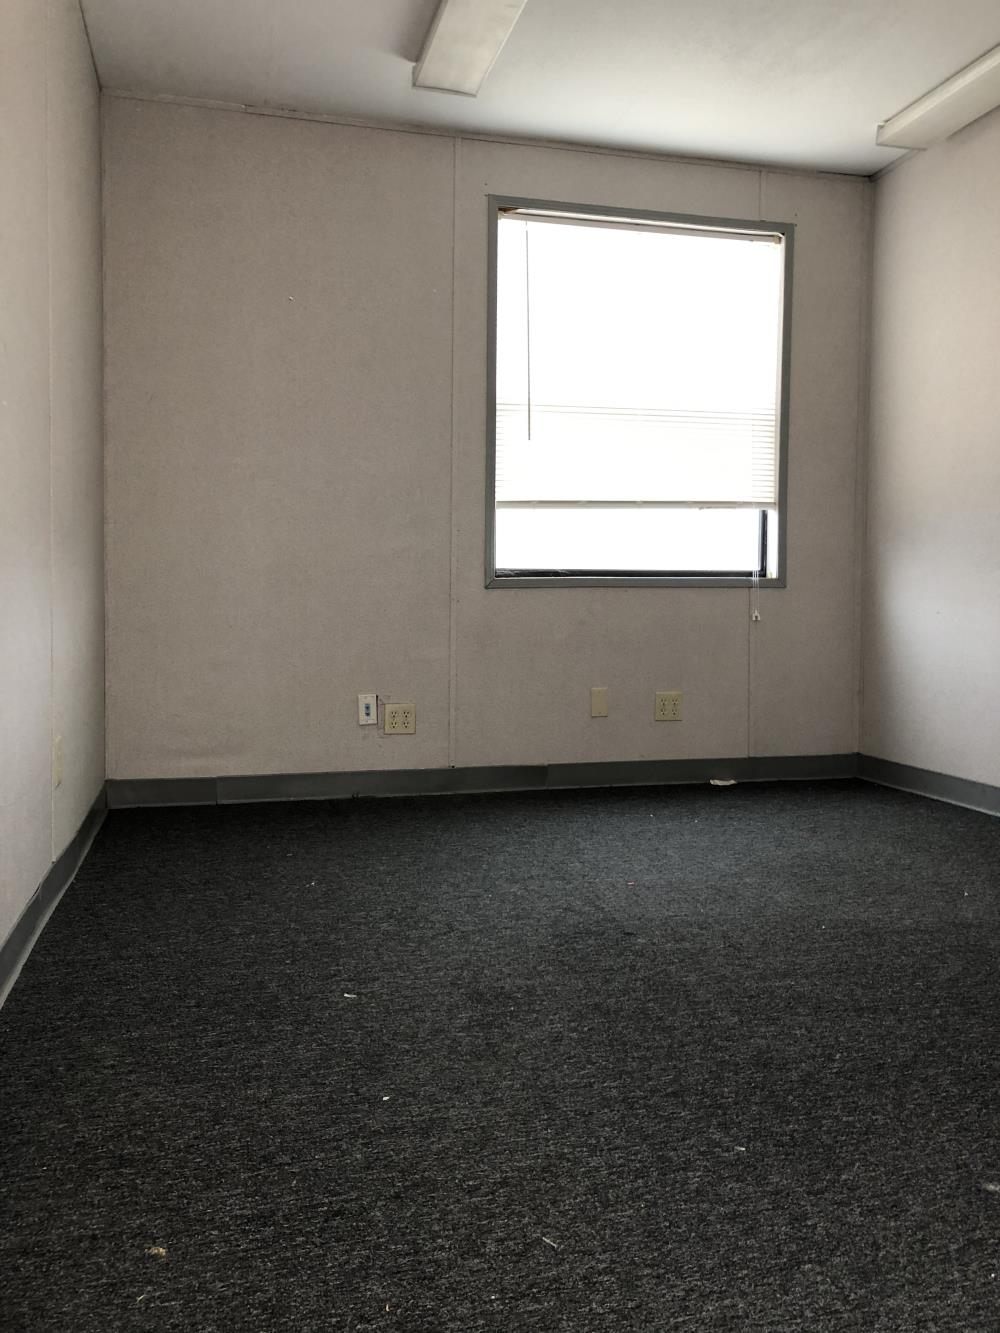 64'x28' Section Modular for sale in Dallas North - CPX-108255 -9